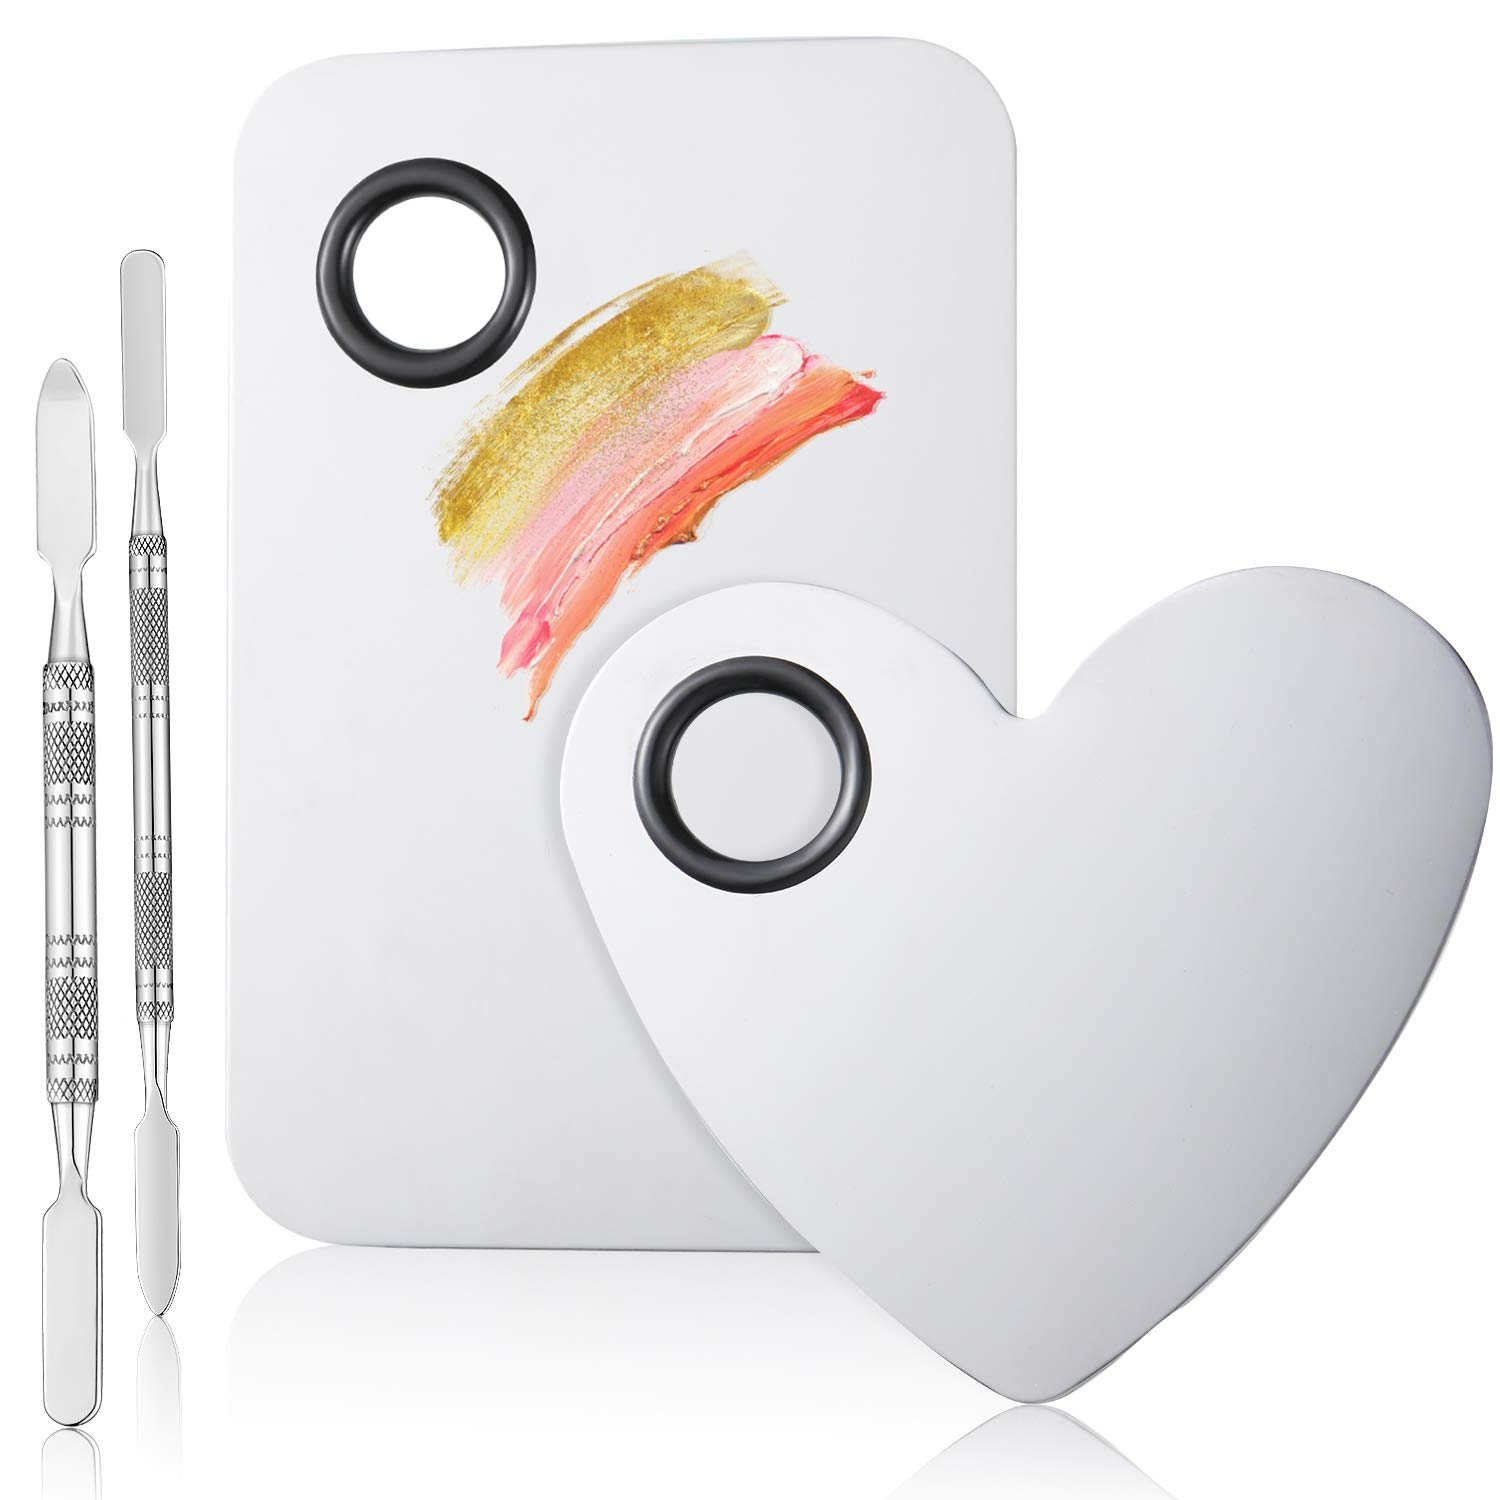 2 Sets Stainless Steel Makeup Mixing Palette with Spatula Tools Rectangle and Heart Shaped Cosmetic Palette for Nail Art Eye Shadow Eyelash Extension Pigment Blending Cosmetic Foundation Shades